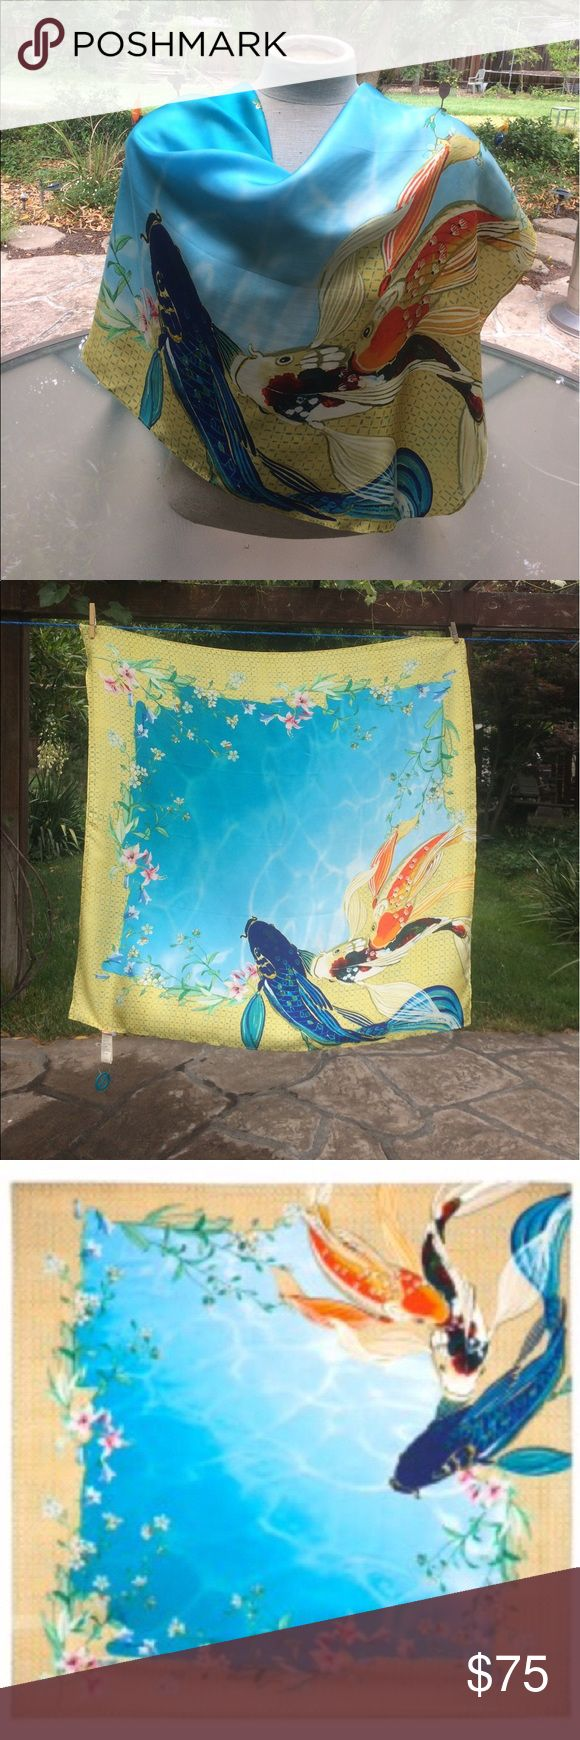 """🐠 Johnny Was - STUNNING, Multi-Colored Scarf NEW! Vivid & Beautiful! Brand New, Multi-Colored, """"Johnny Was"""" 100% Silk Signature KOI Scarf! Comes with a Scarf Holder still attached to Tag (never worn). Can be worn as a Sarong also. This square (33"""" x 33"""") Silk twill scarf features a bold koi fish print on a yellow and blue background. Photos cannot show how beautiful & show-stopping this item is! Please see Photos with descriptions of this prize find. Bundle additional items from my closet…"""